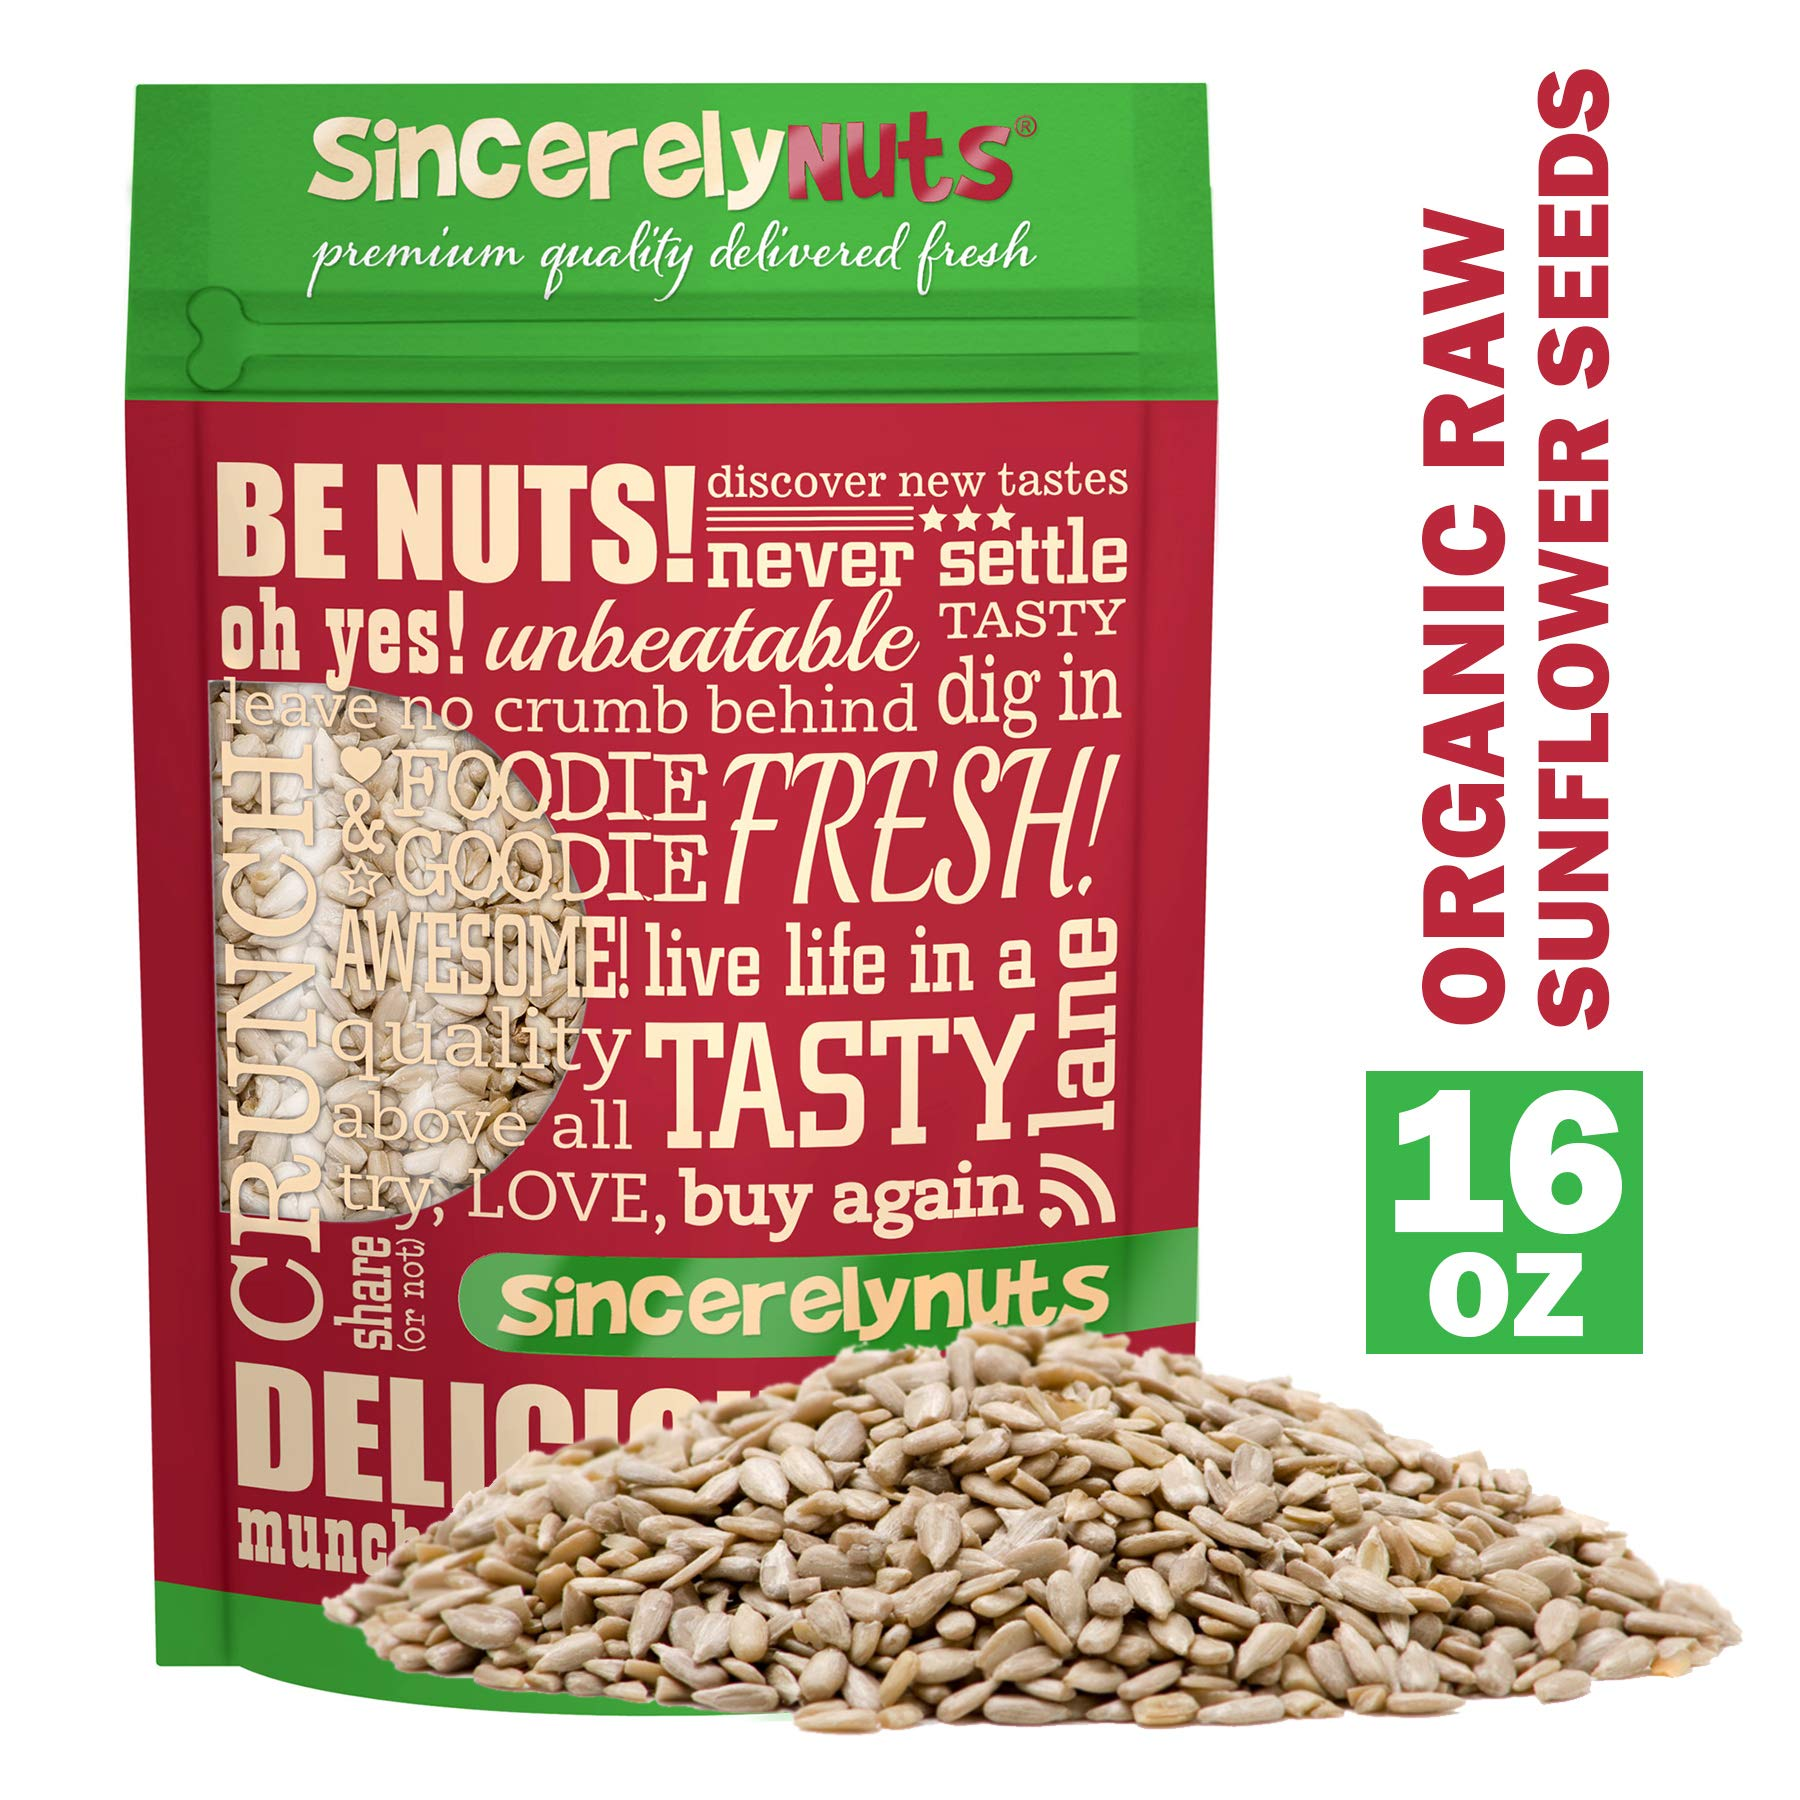 Sincerely Nuts Organic Sunflower Seed Kernels Raw (No Shell) (1lb bag) | Nutritious Antioxidant Rich Superfood Snack | Source of Protein, Fiber, Essential Vitamins & Minerals | Vegan and Gluten Free by Sincerely Nuts